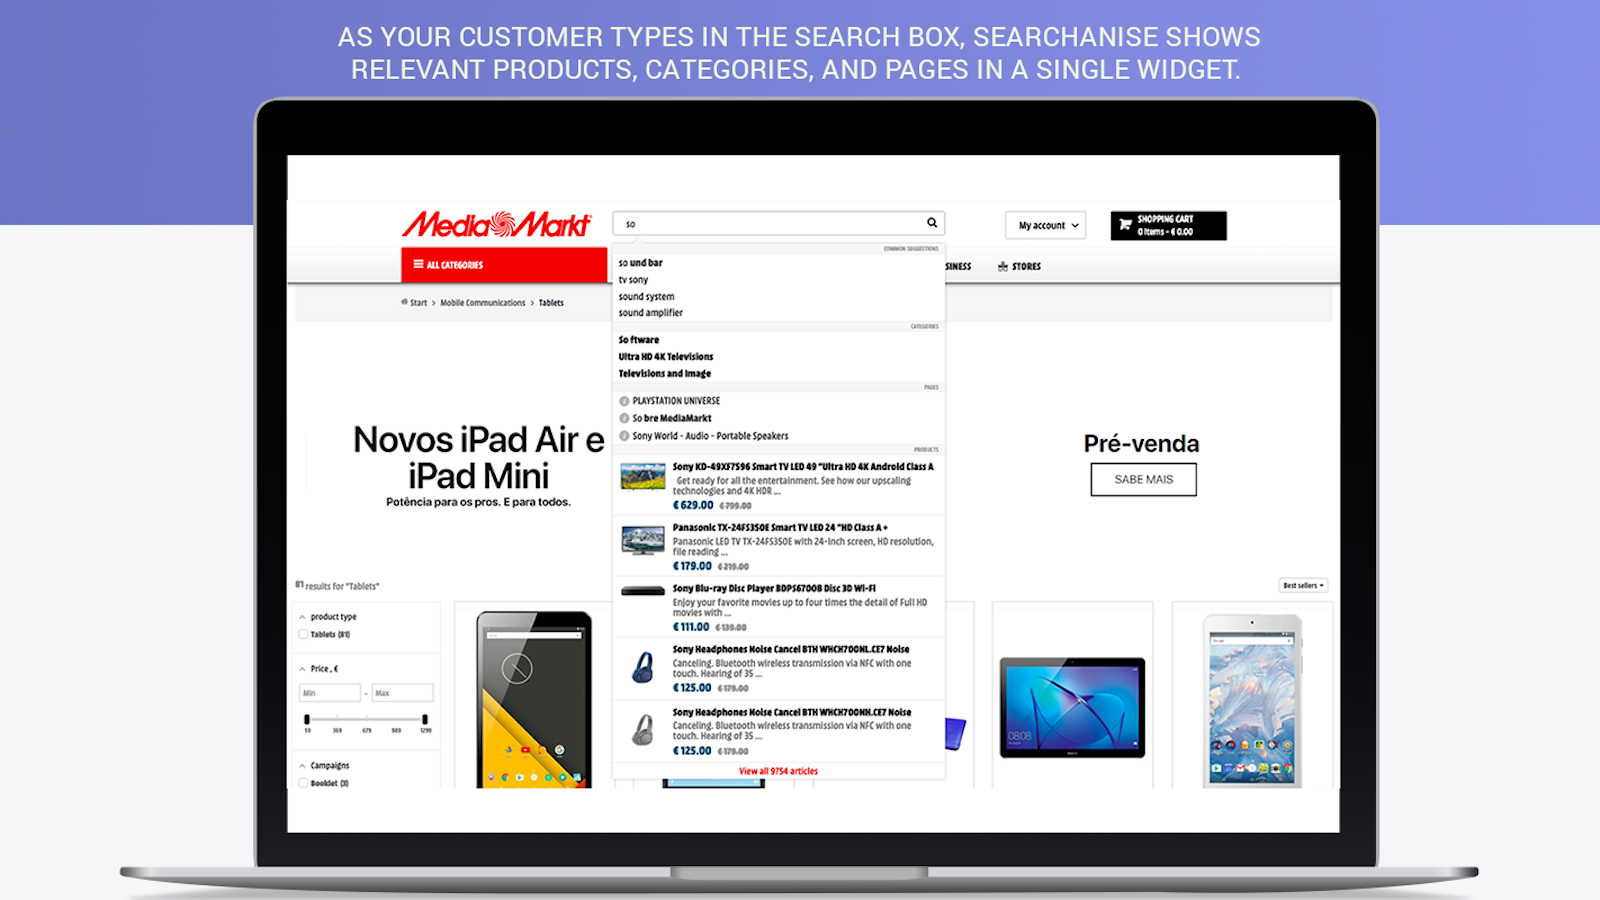 Relevant Shopify smart search as you type